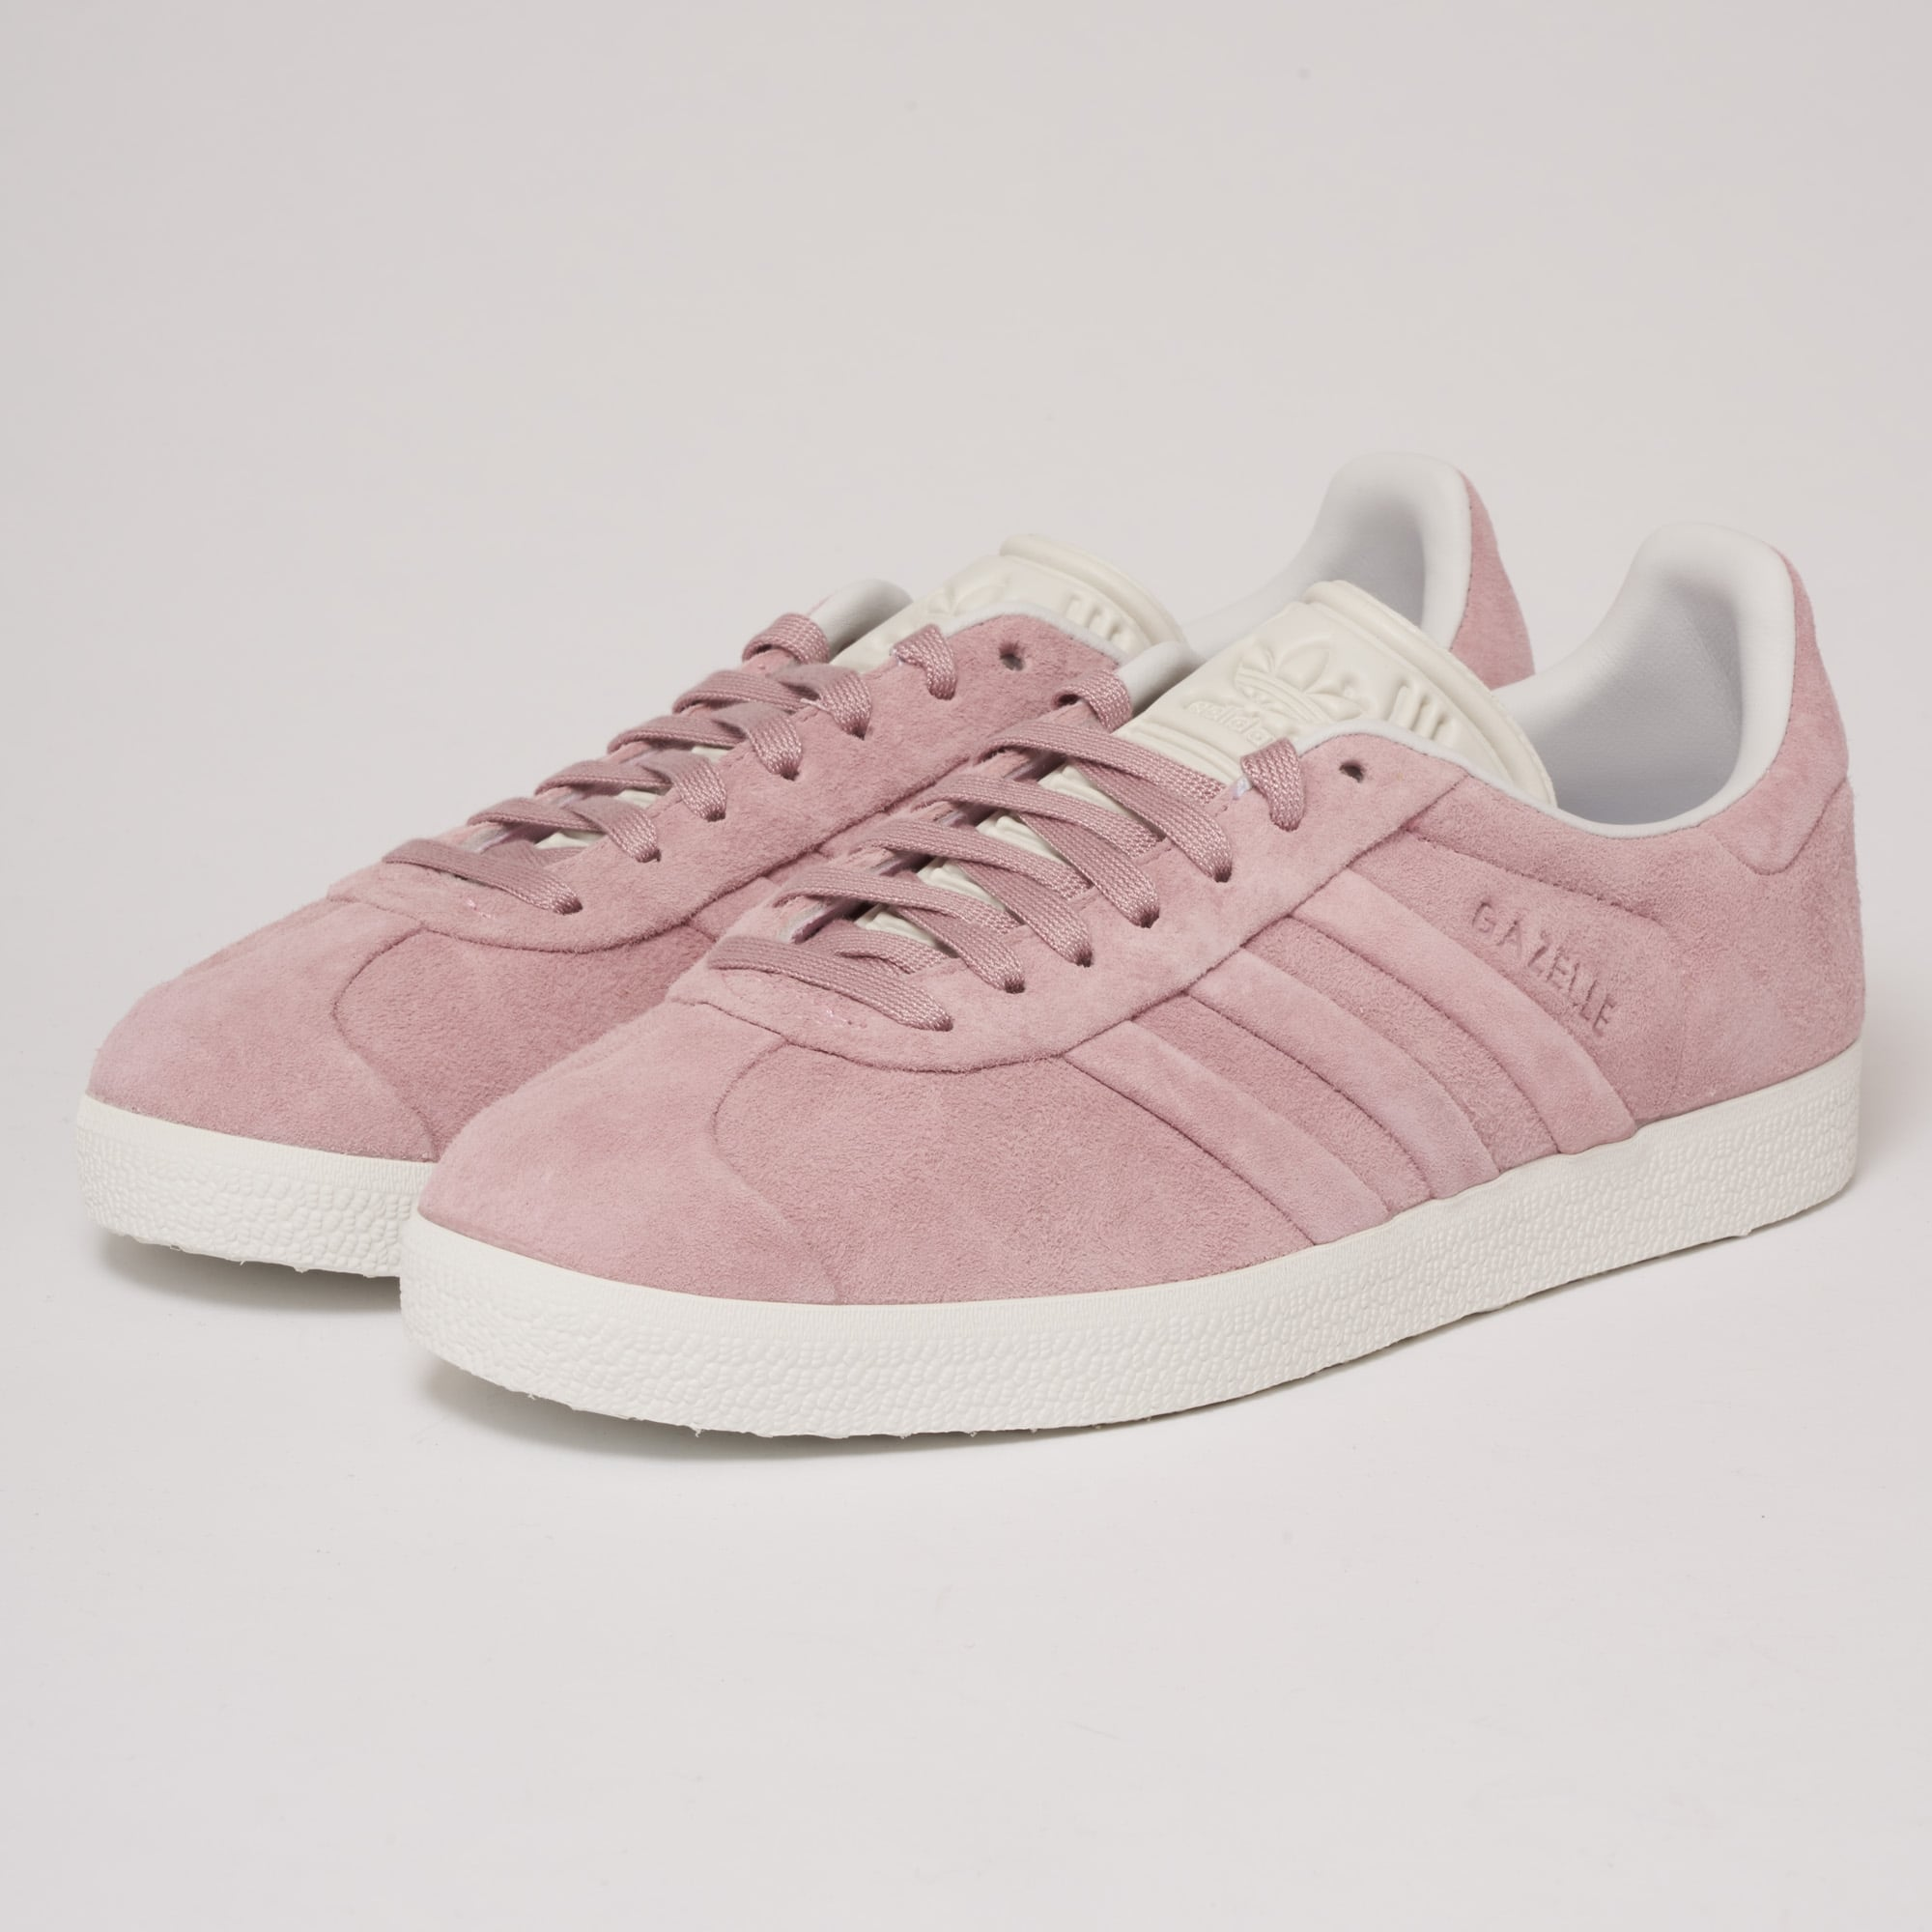 adidas pink gazelle Online Shopping for